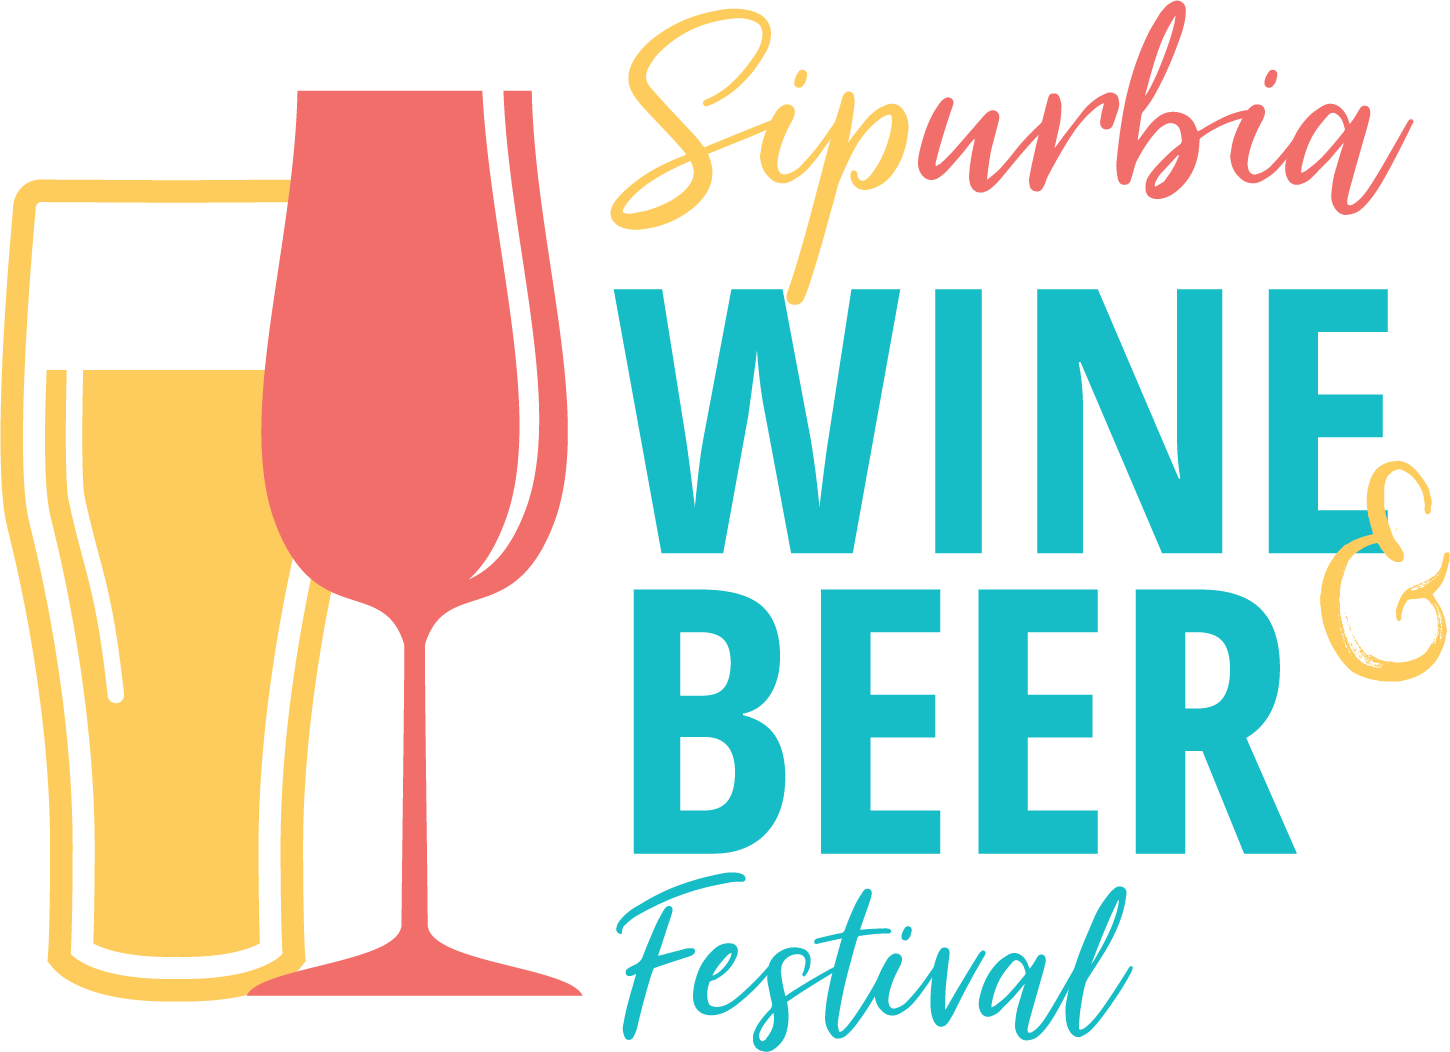 sipburbia-wine-and-beer-tasting